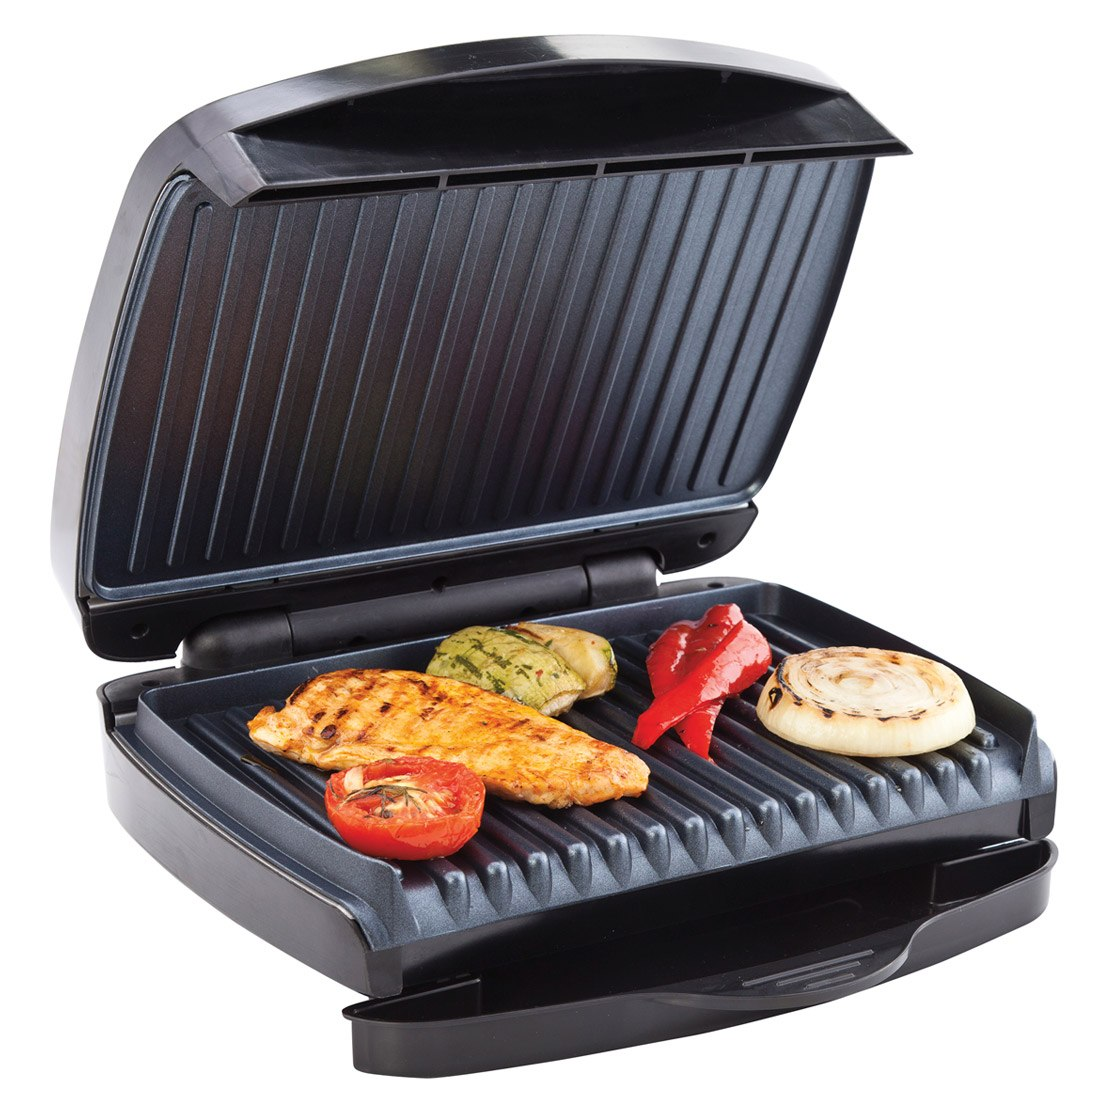 25335-Grill